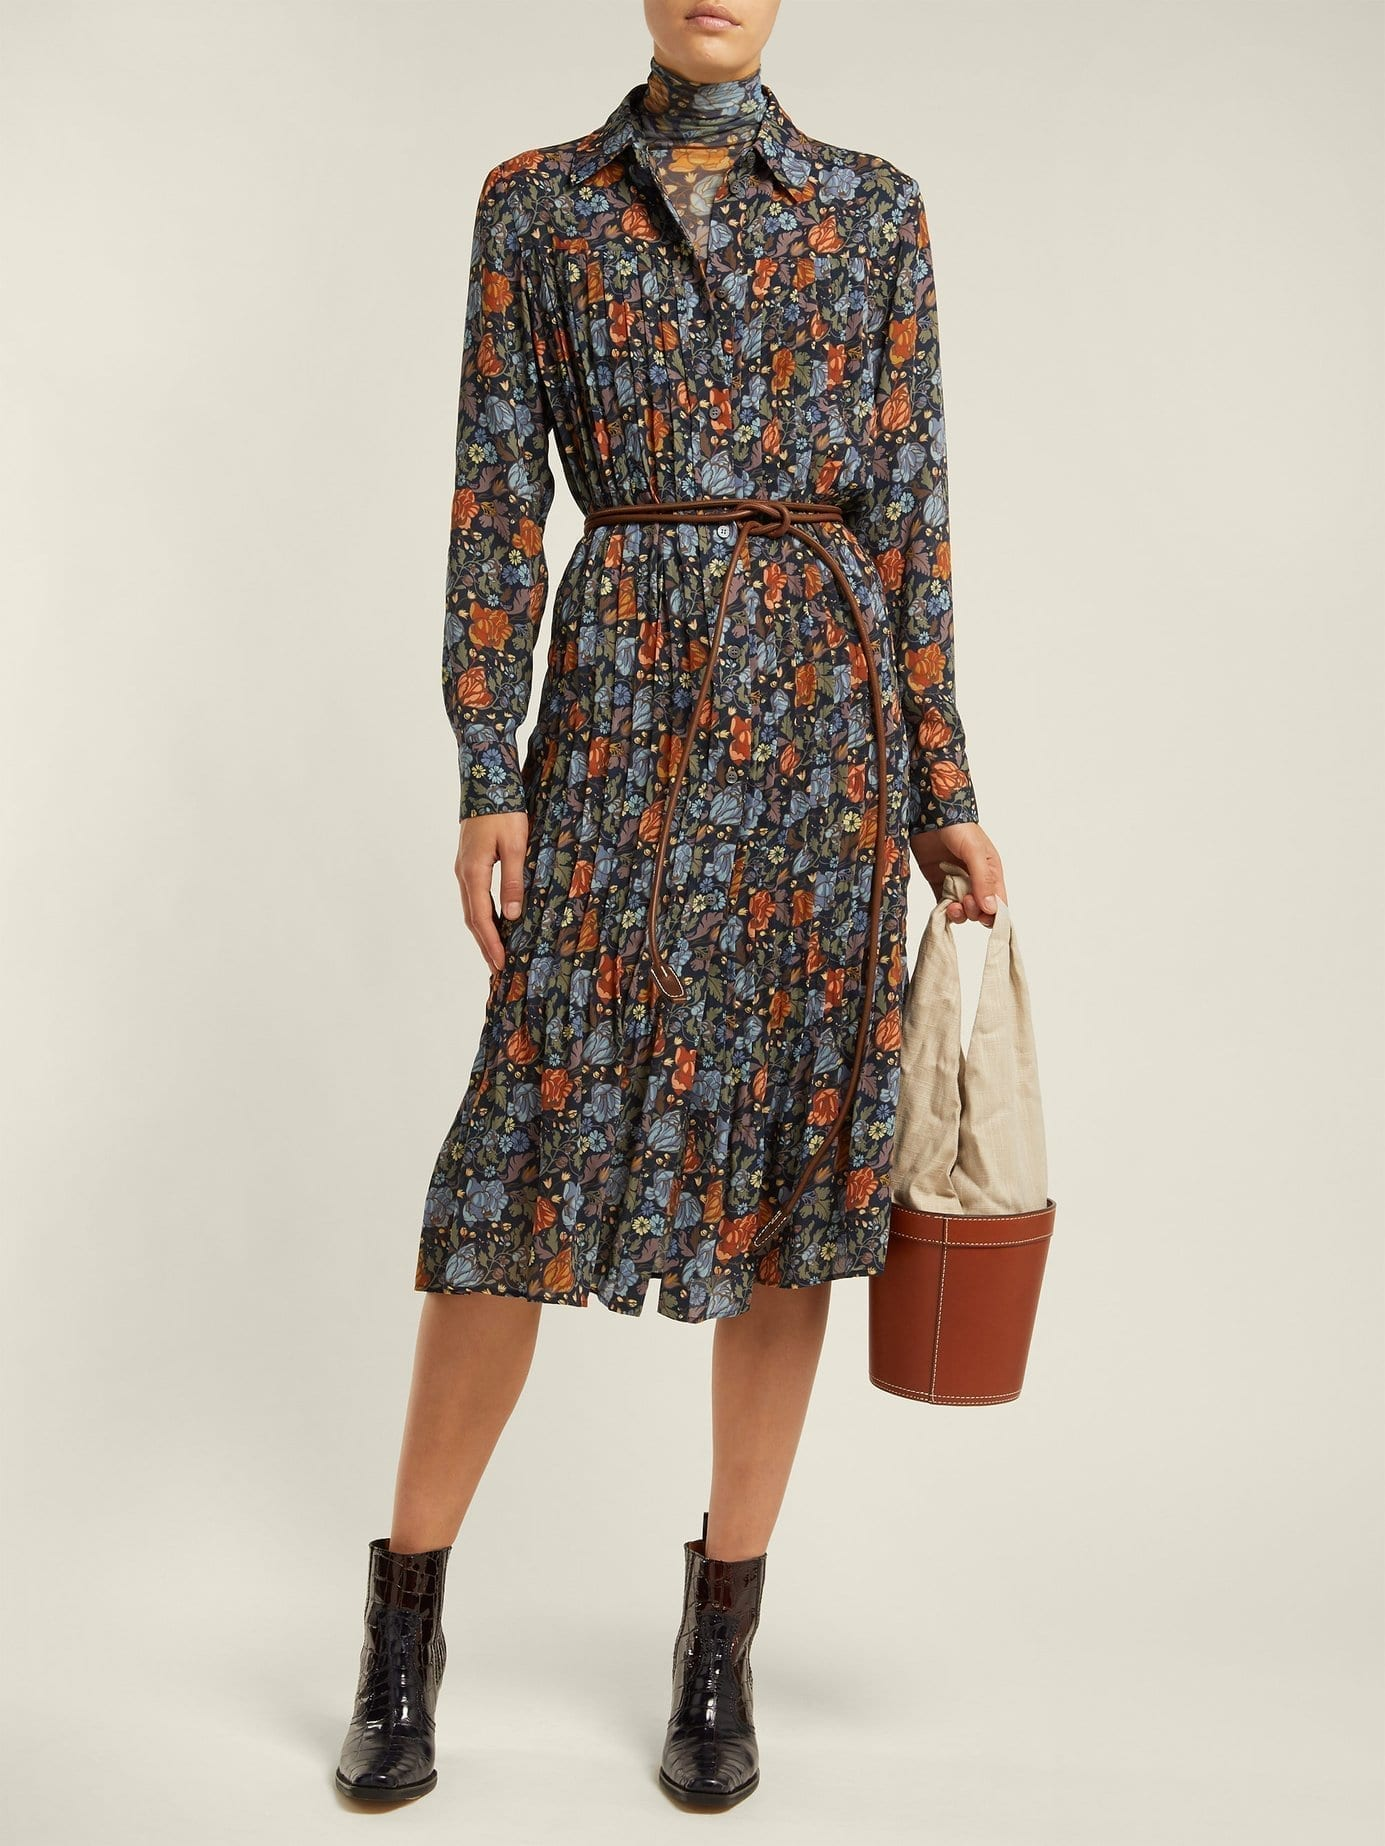 Acne Studios Pleated Navy Fl Printed Dress